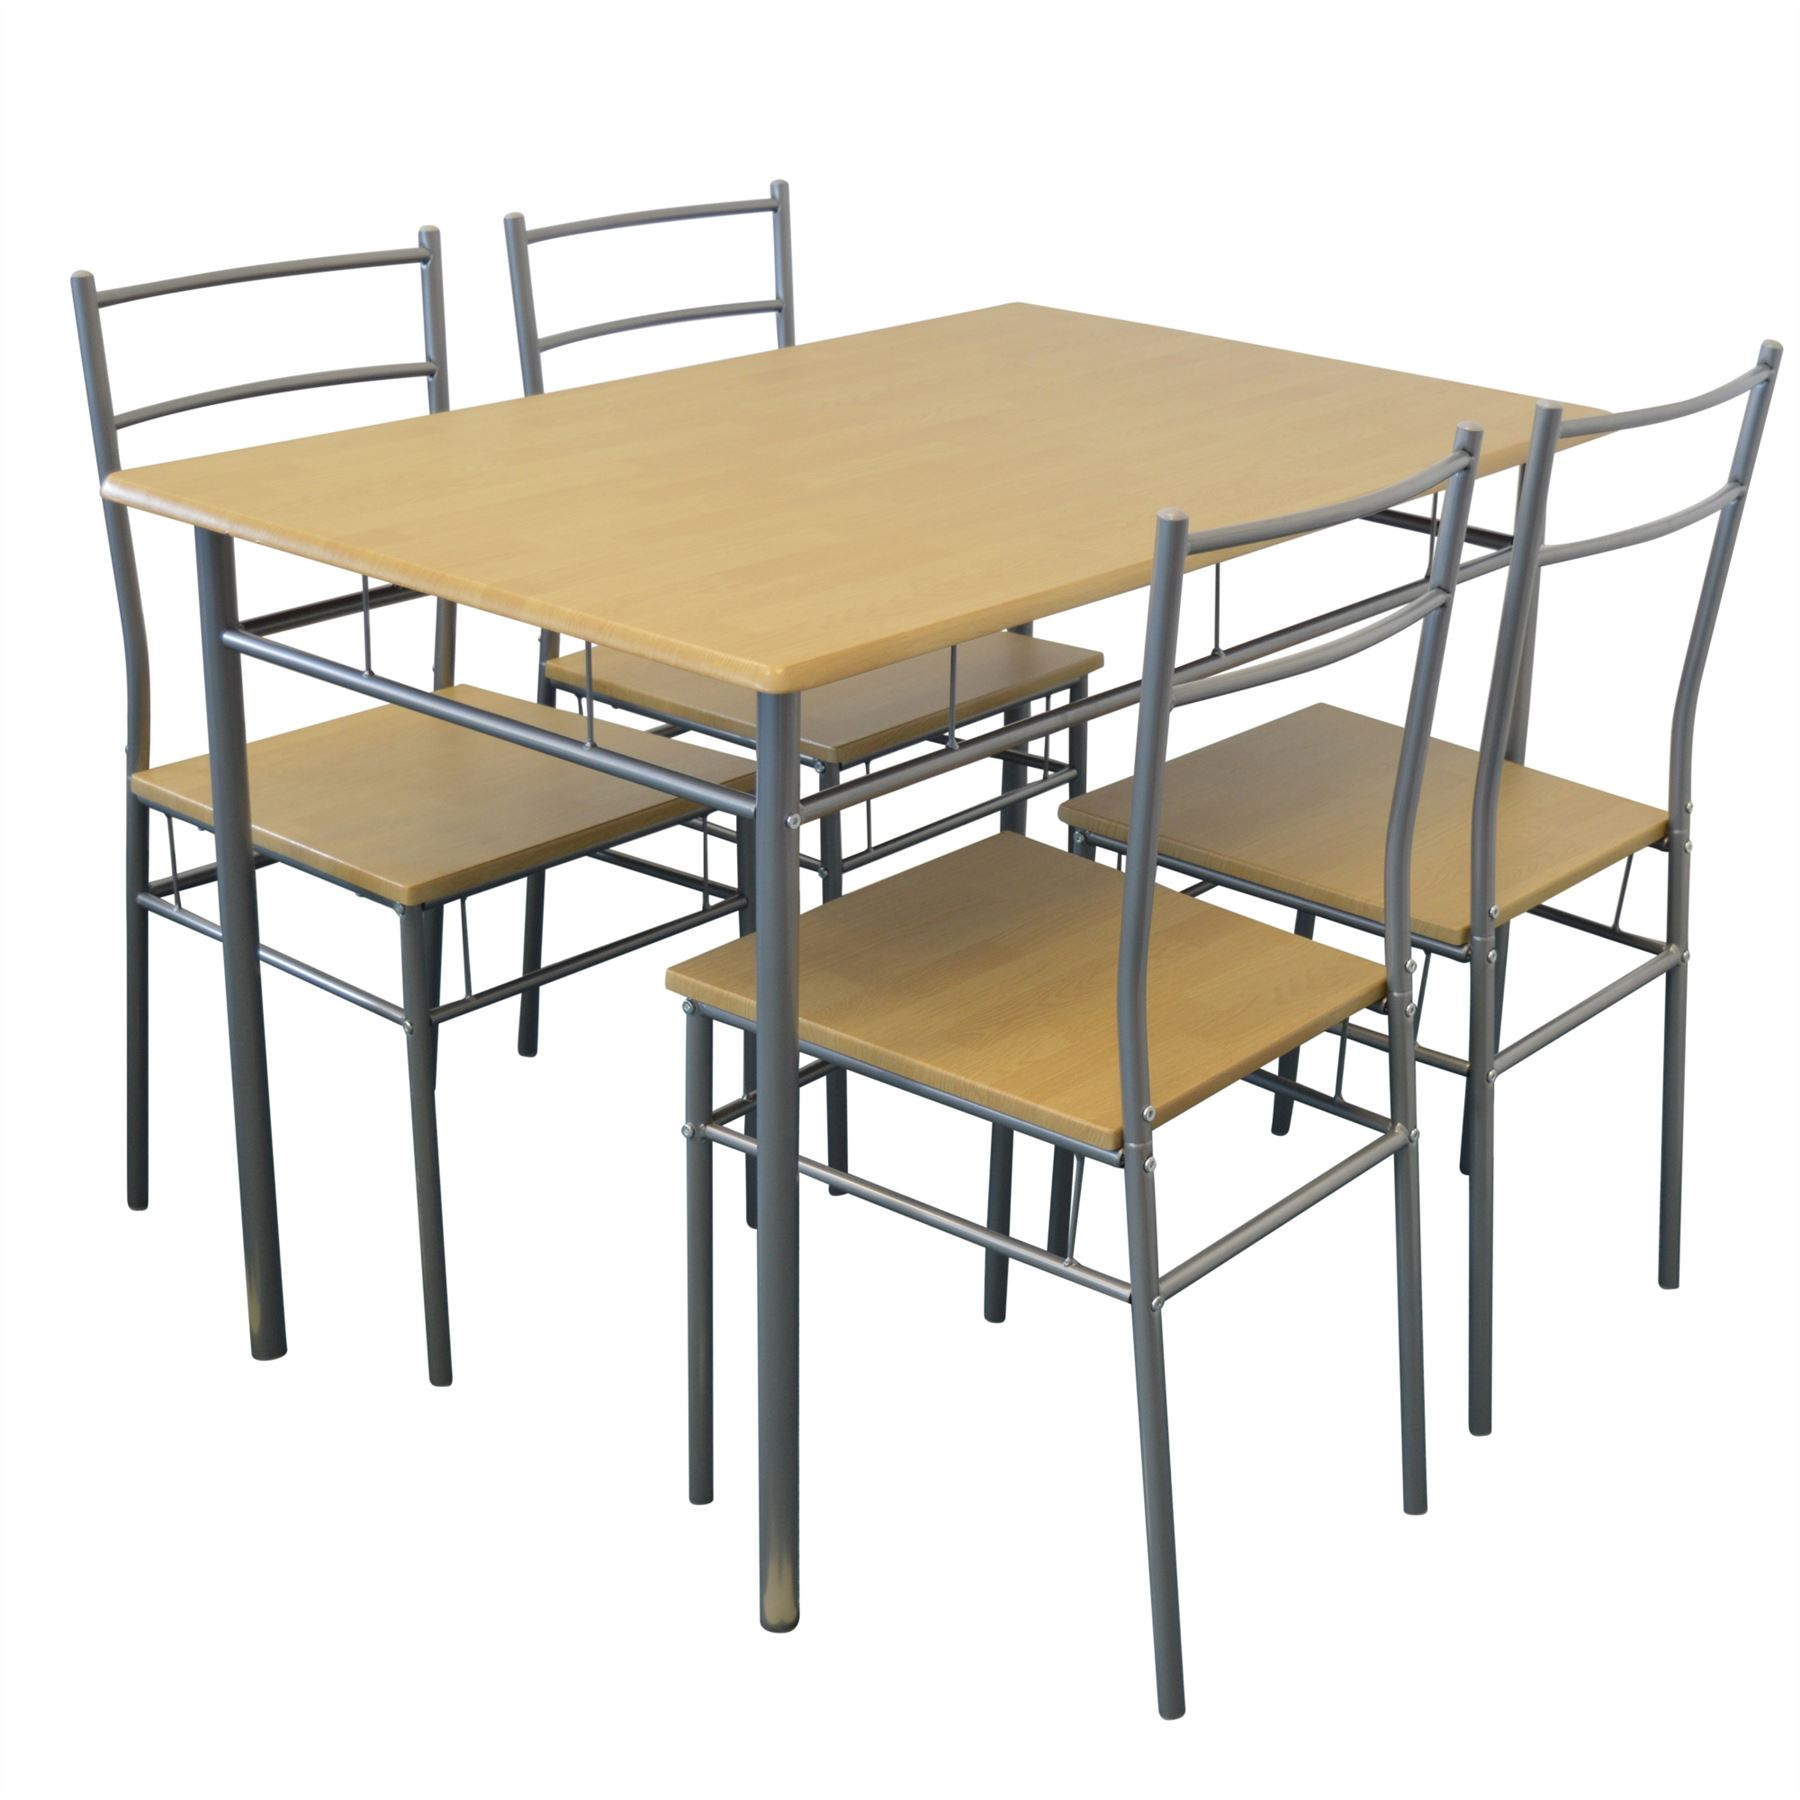 5 piece kitchen dining room table chairs furniture set for 5 piece dining room set with bench